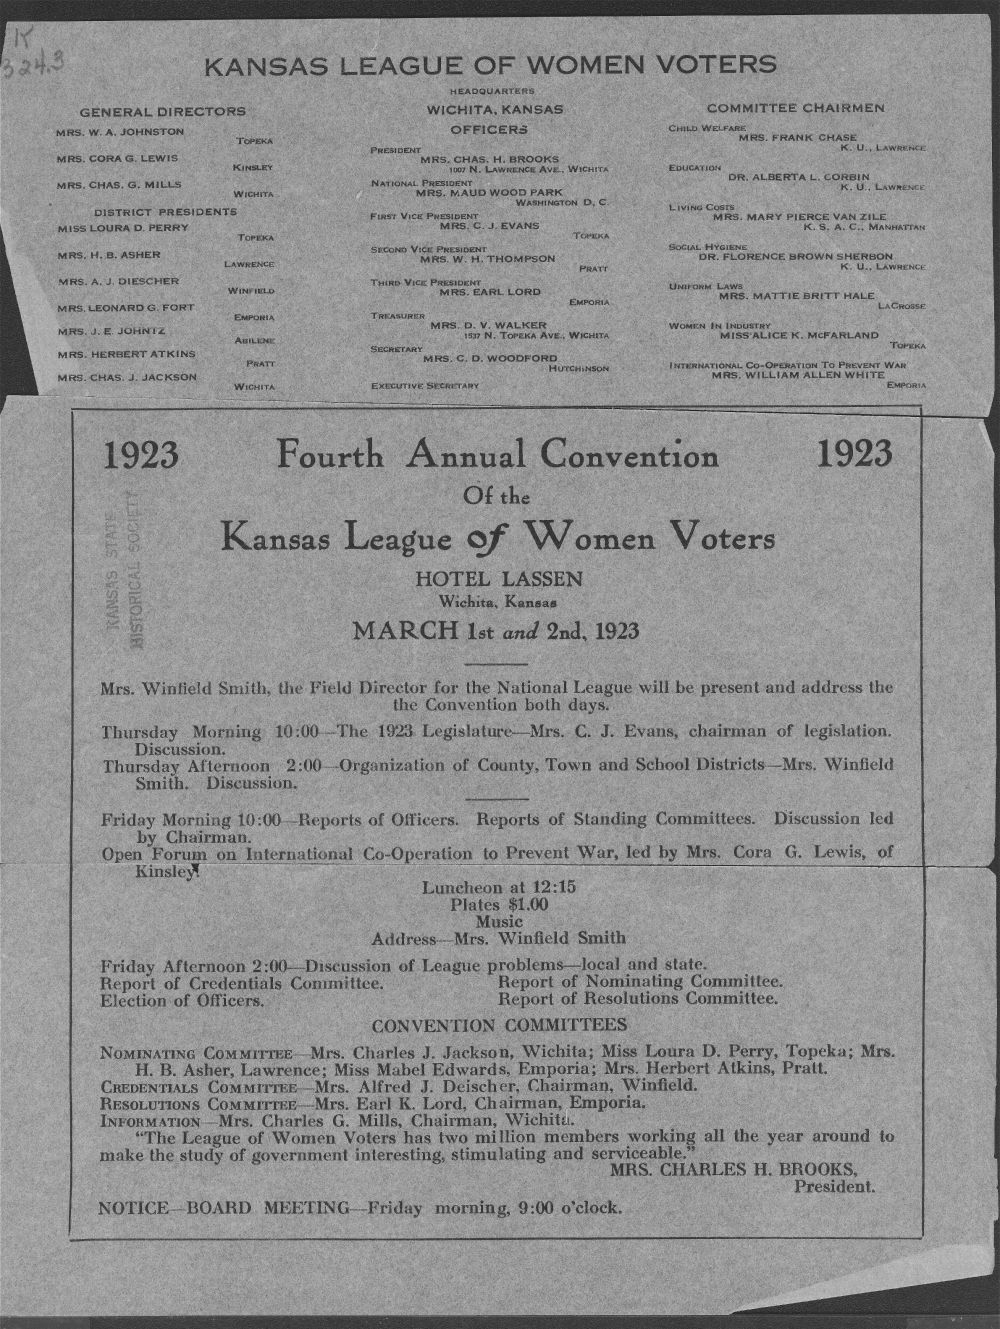 Annual Convention of the Kansas League of Women Voters